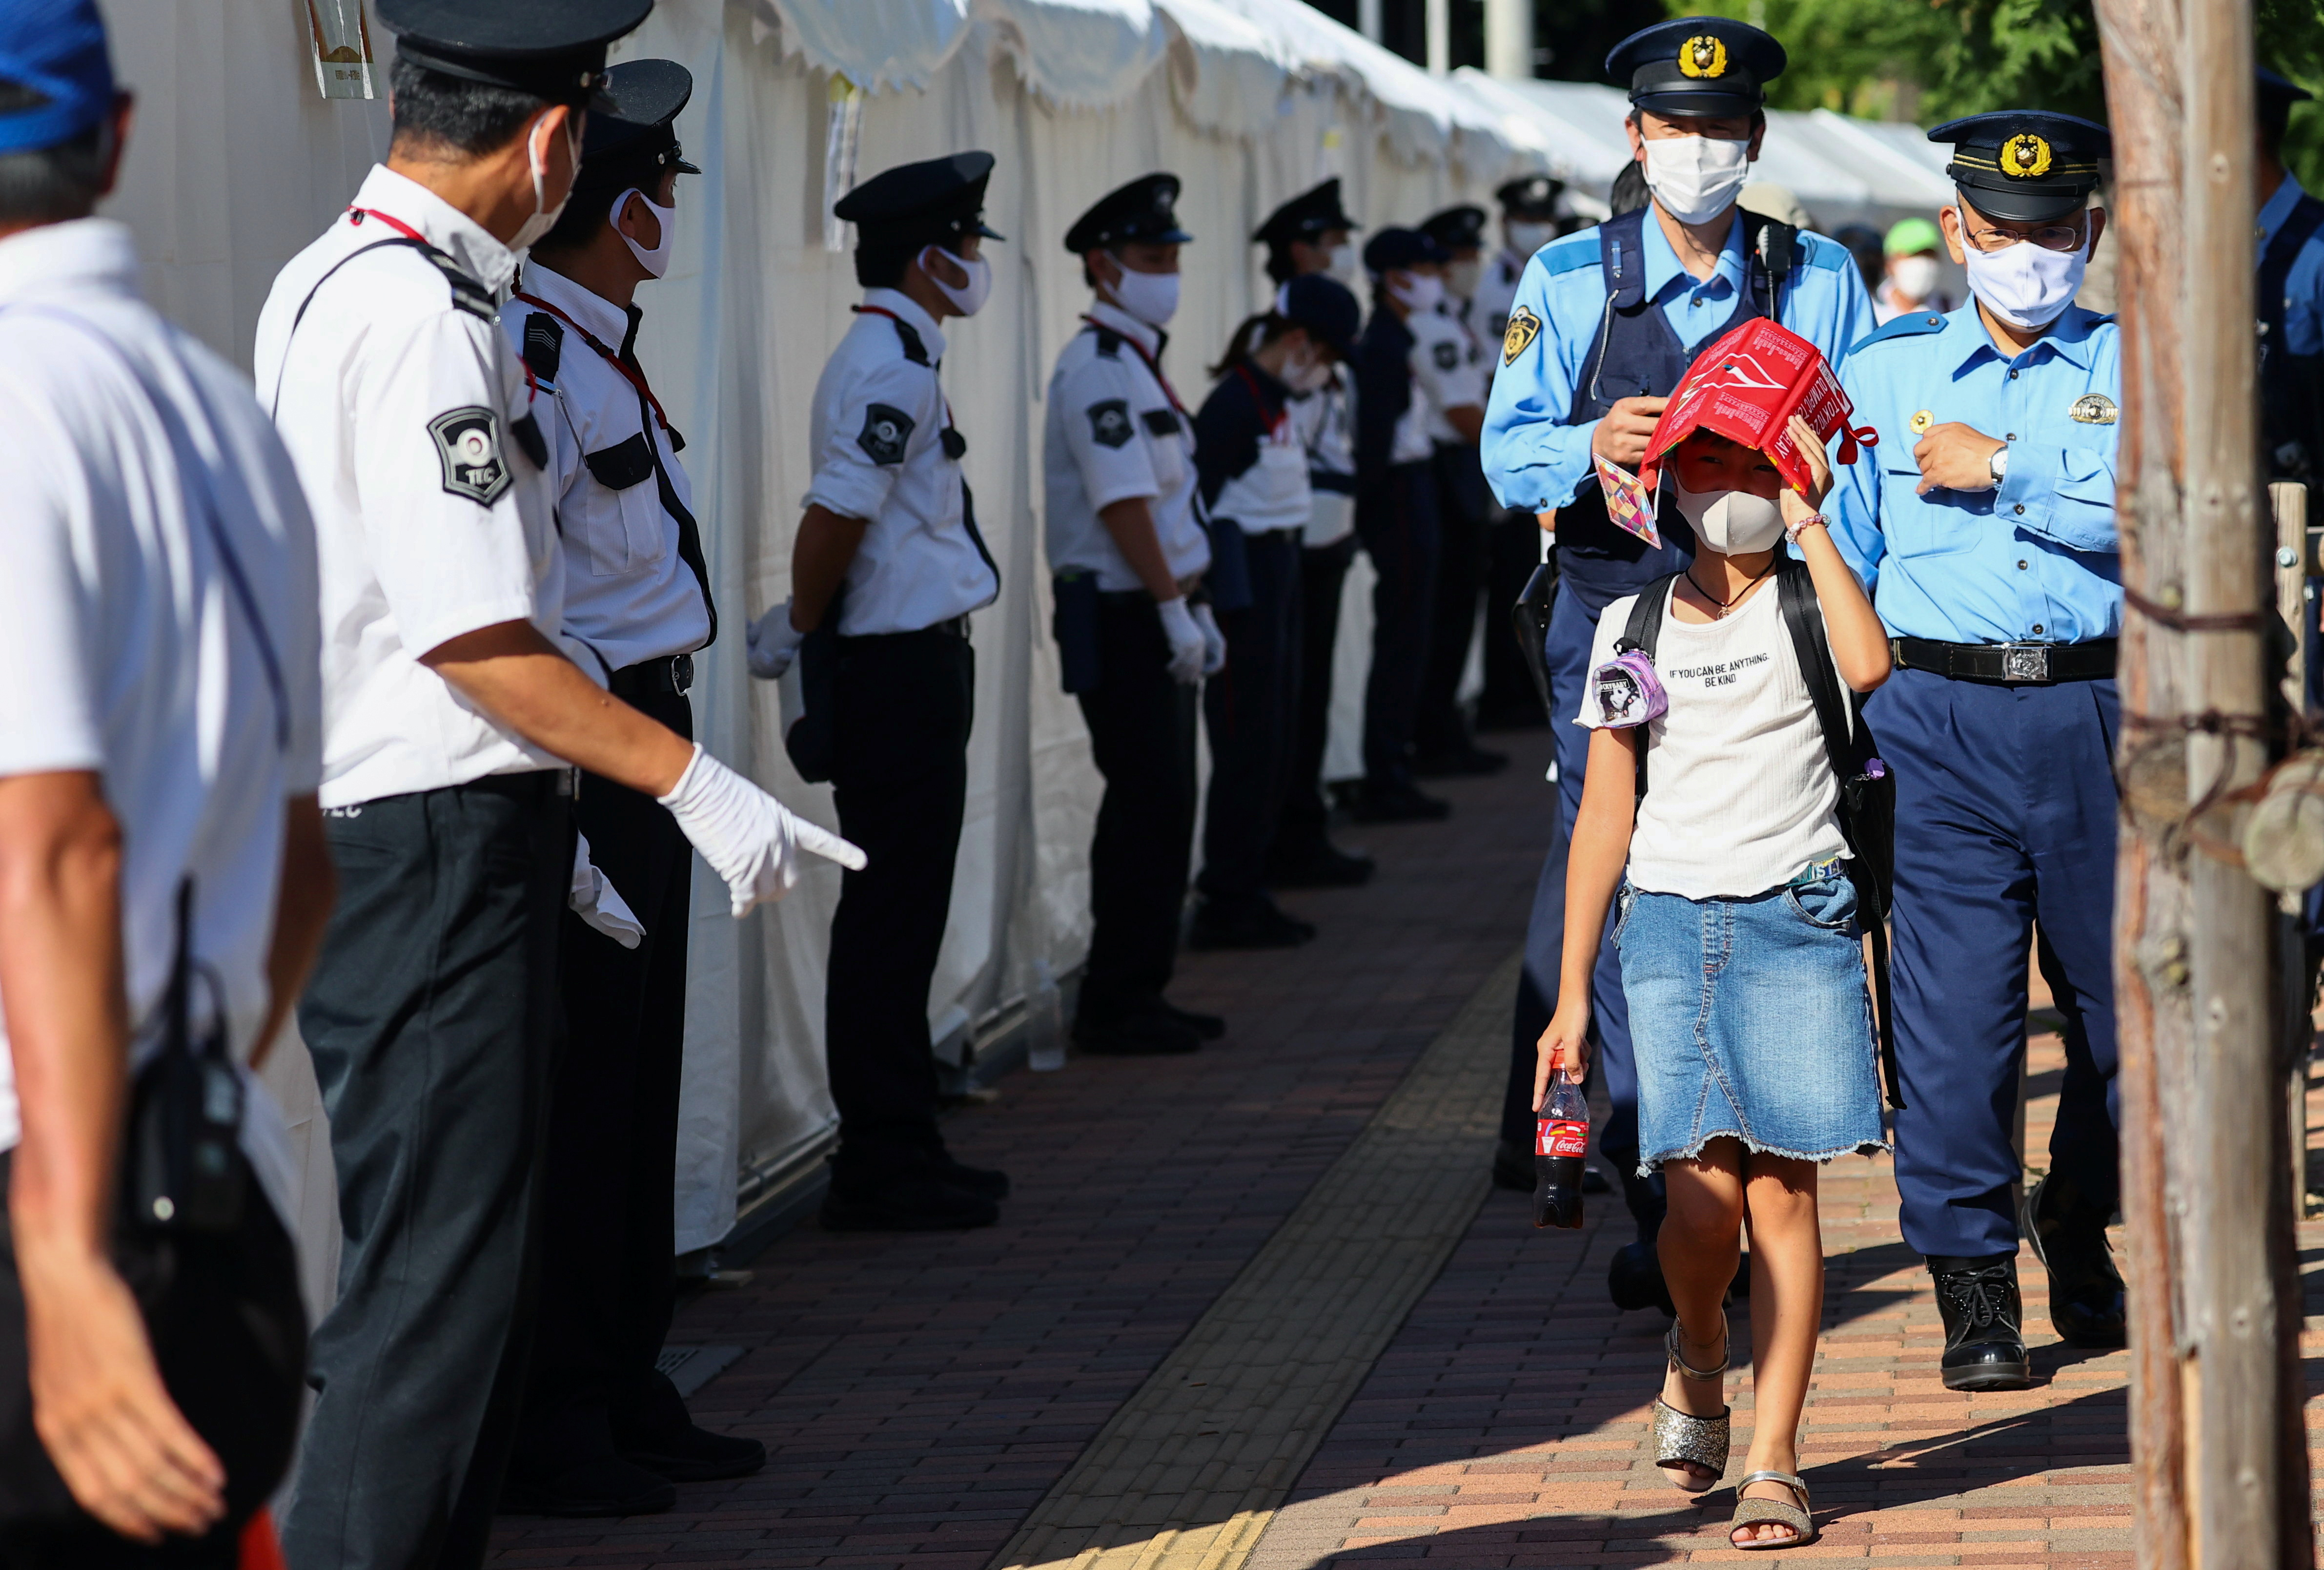 A girl covers her head to cool down as she walks next to police officers and security personnel outside a torch kiss event for the Tokyo 2020 Olympic torch relay celebration at Shinagawa Central Park in Tokyo Japan, July 21, 2021. REUTERS/Issei Kato